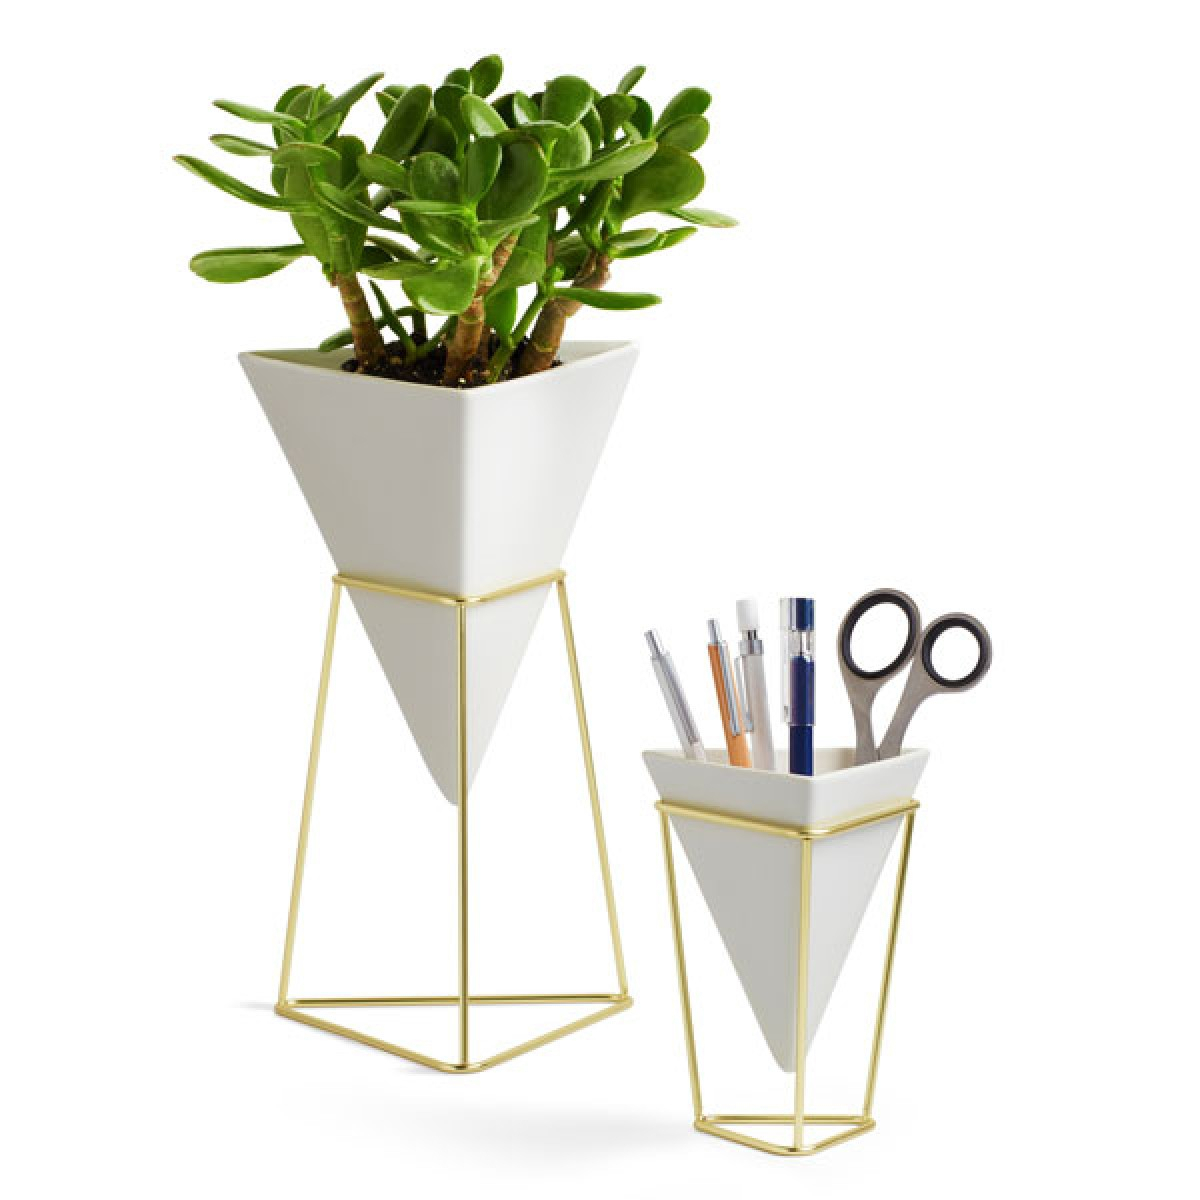 Umbra Trigg Desk Vessel - Set Of 2 intended for 2 Piece Trigg Wall Decor Sets (Set Of 2) (Image 20 of 30)